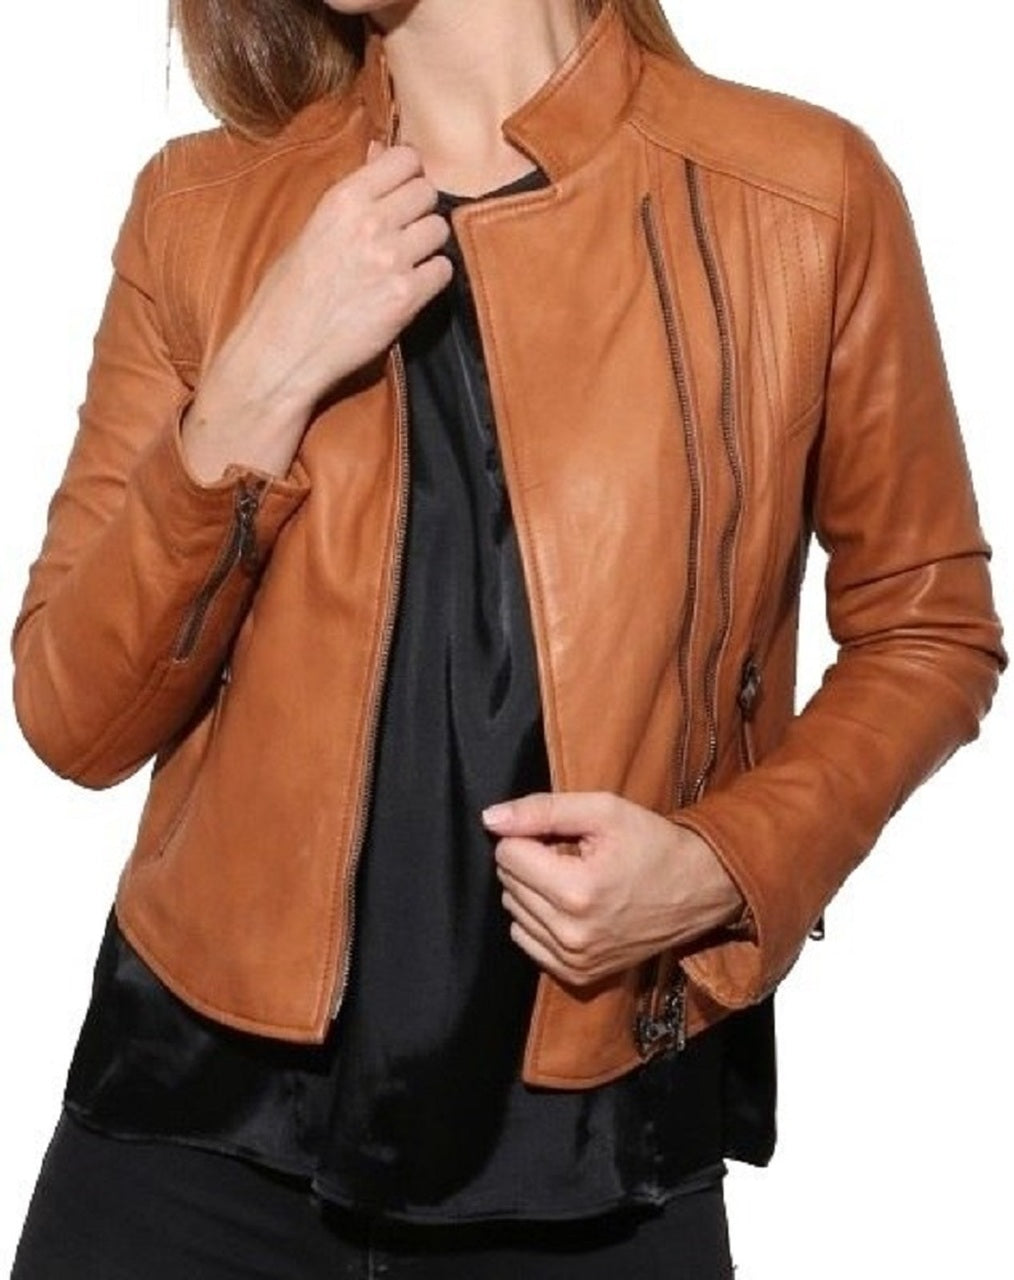 Women's Style Distressed Brown Leather Jacket